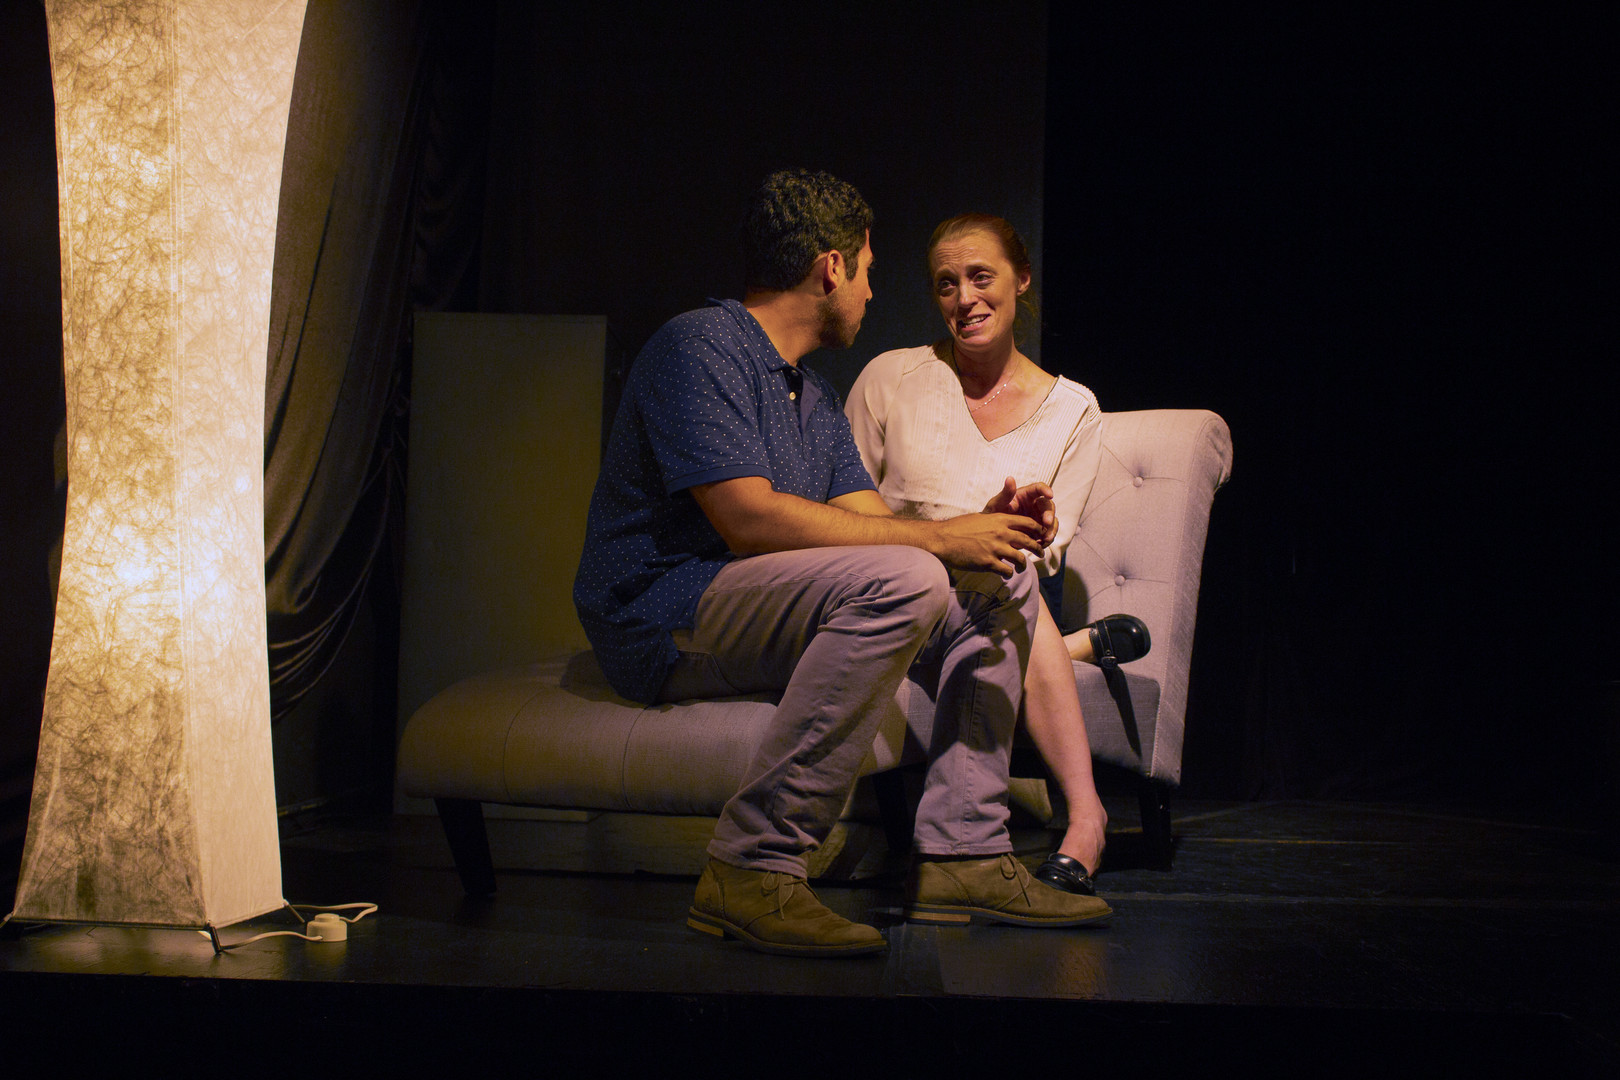 Hank Morris as Elizabeth and Rene Ramirez III as James in JERK, 2017.